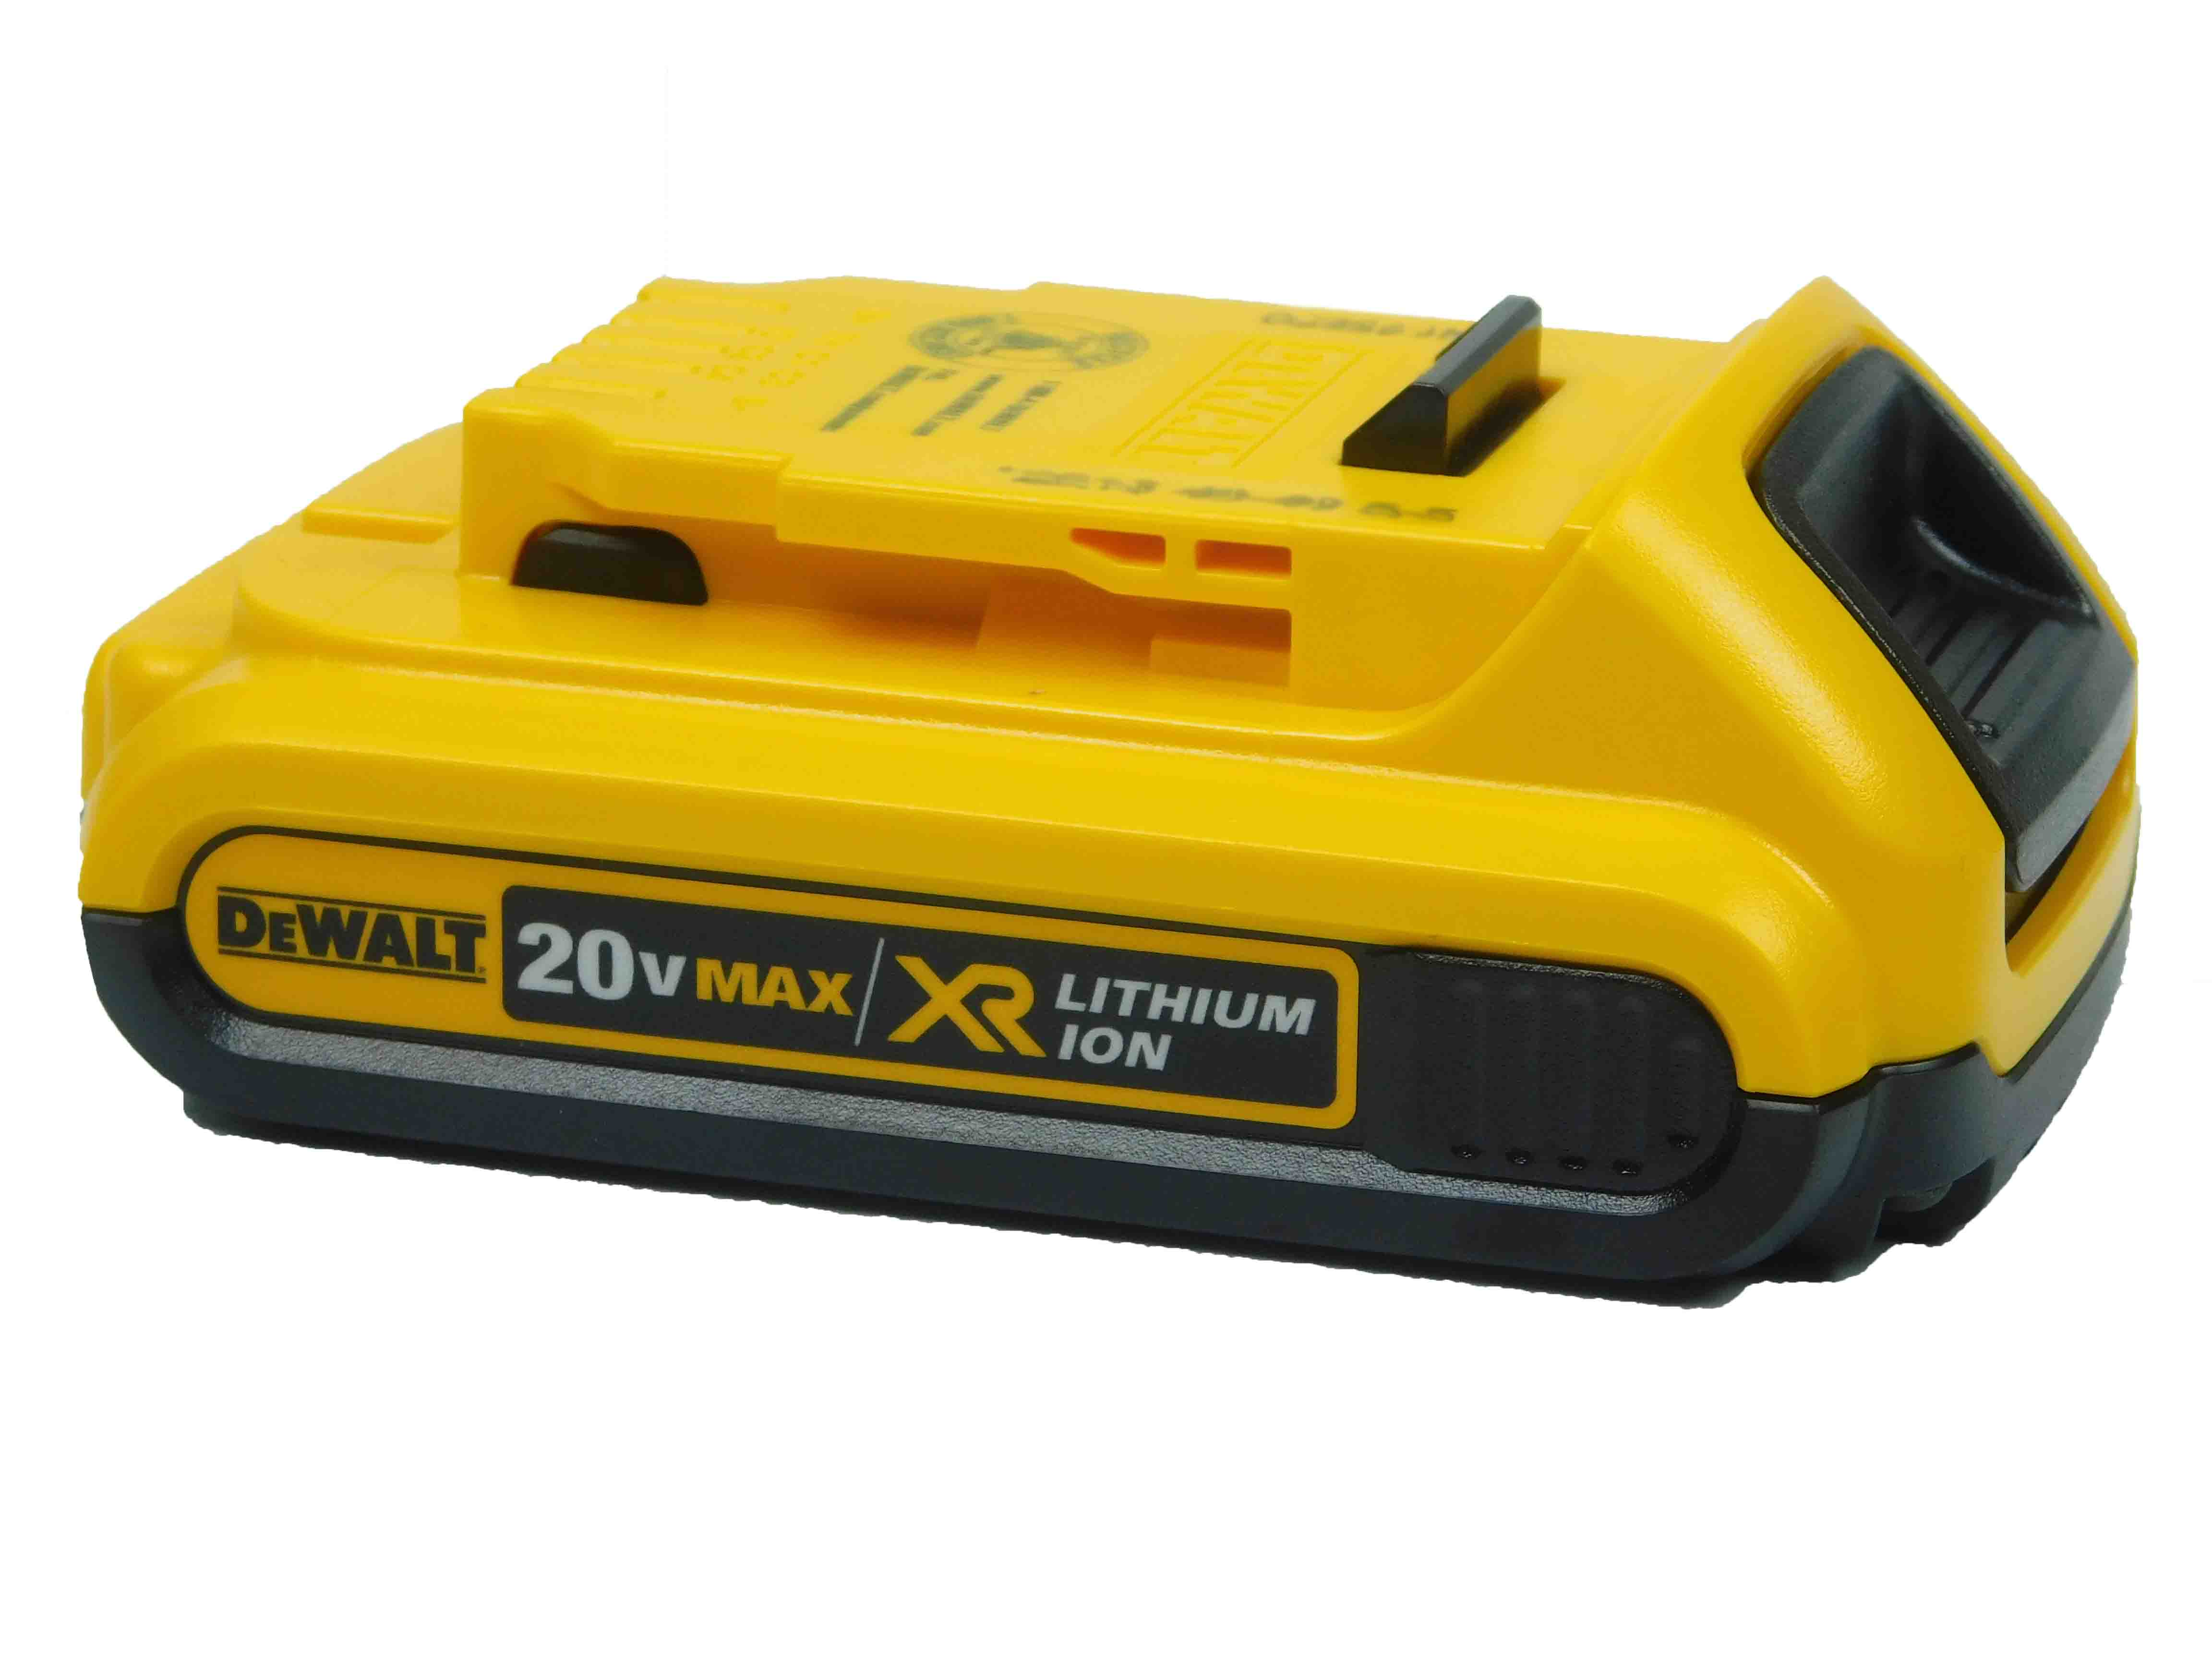 Dewalt-DCB203-20V-2-Ah-Lithium-Ion-Battery-Single-Pack-image-1